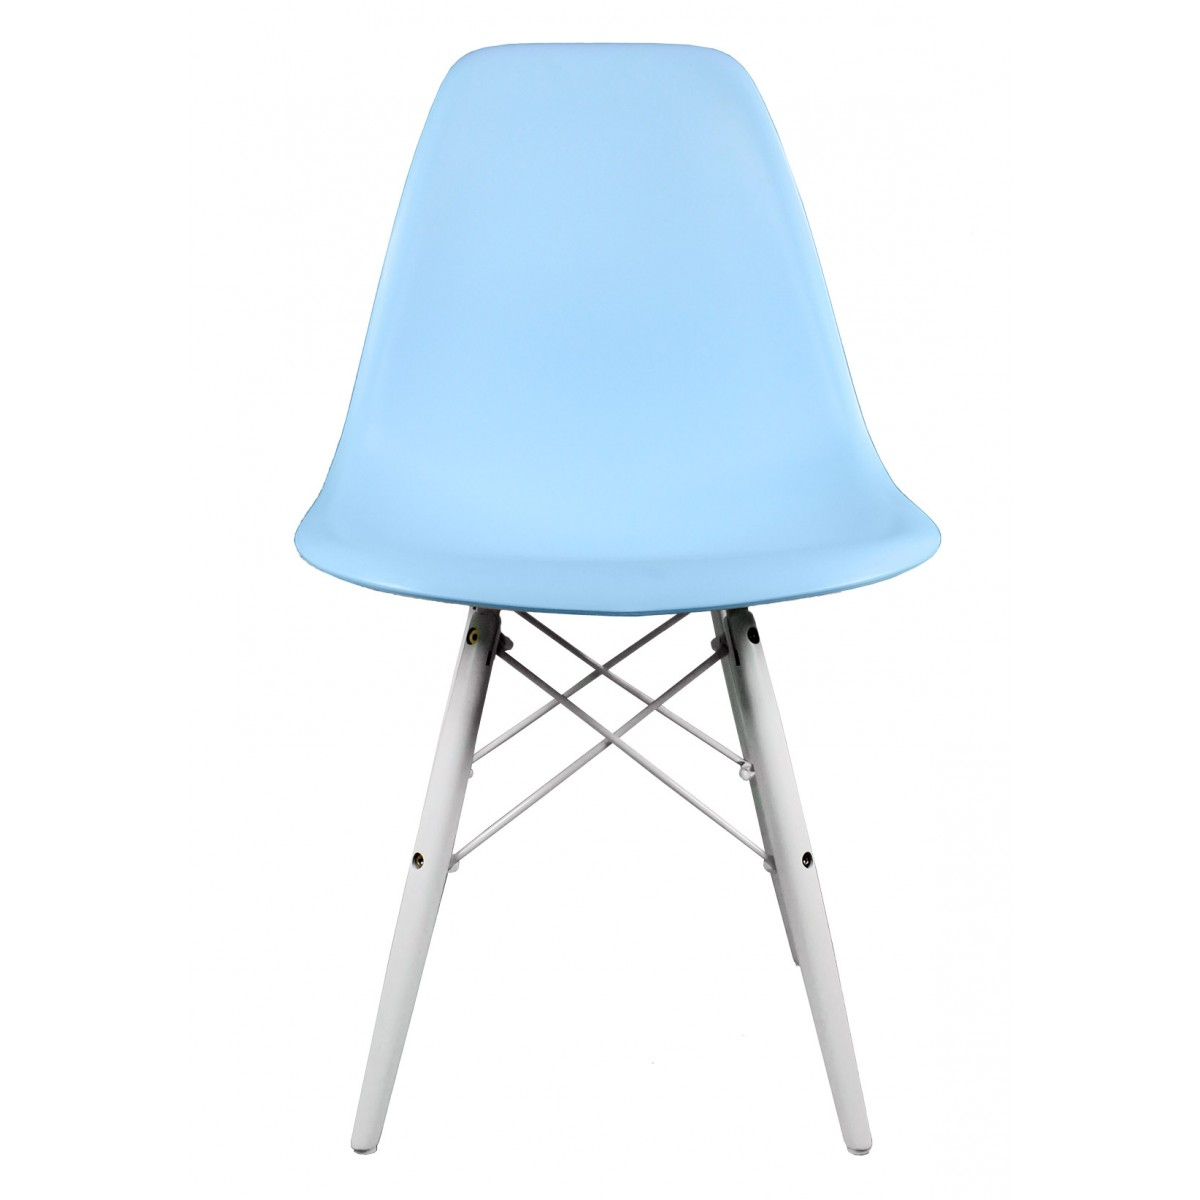 Eames chair white plastic - With Your Purchase Receive At No Cost